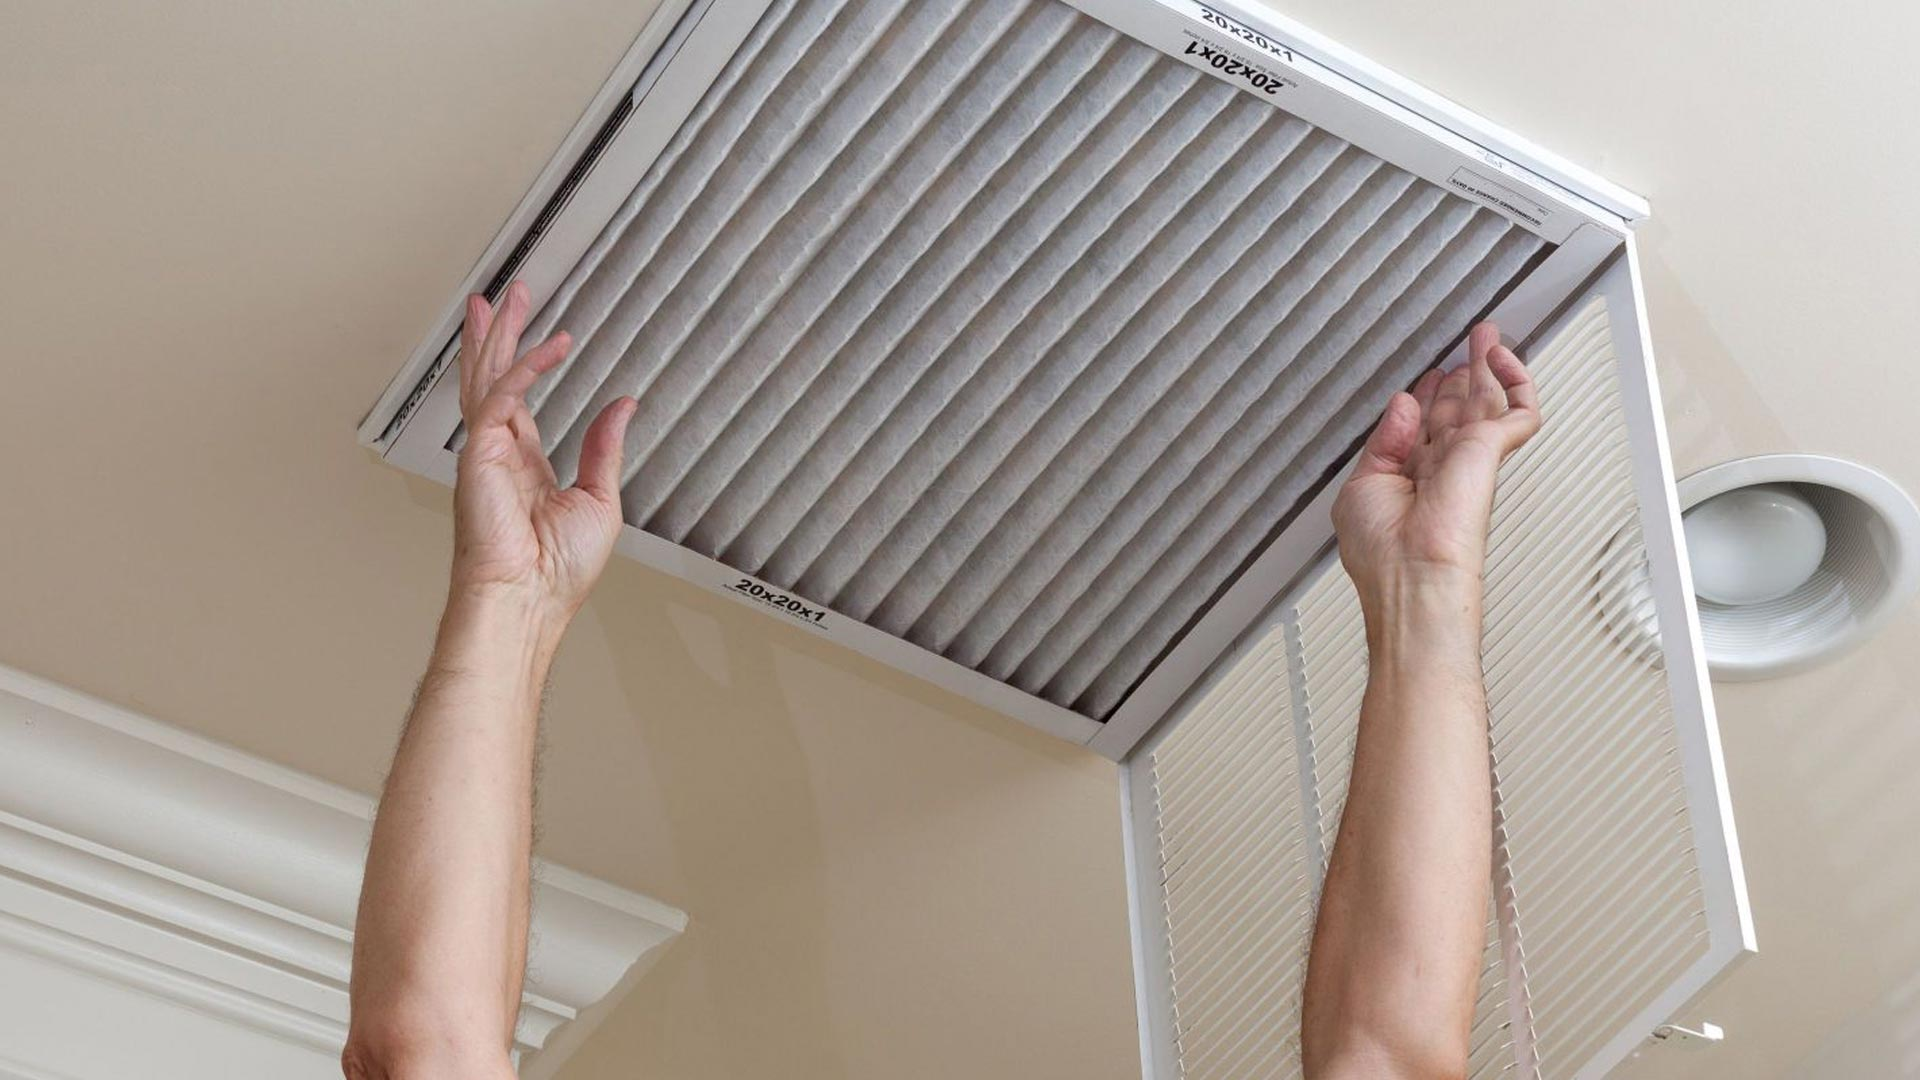 Air Purification Systems | S & R Air Duct Cleaning Services